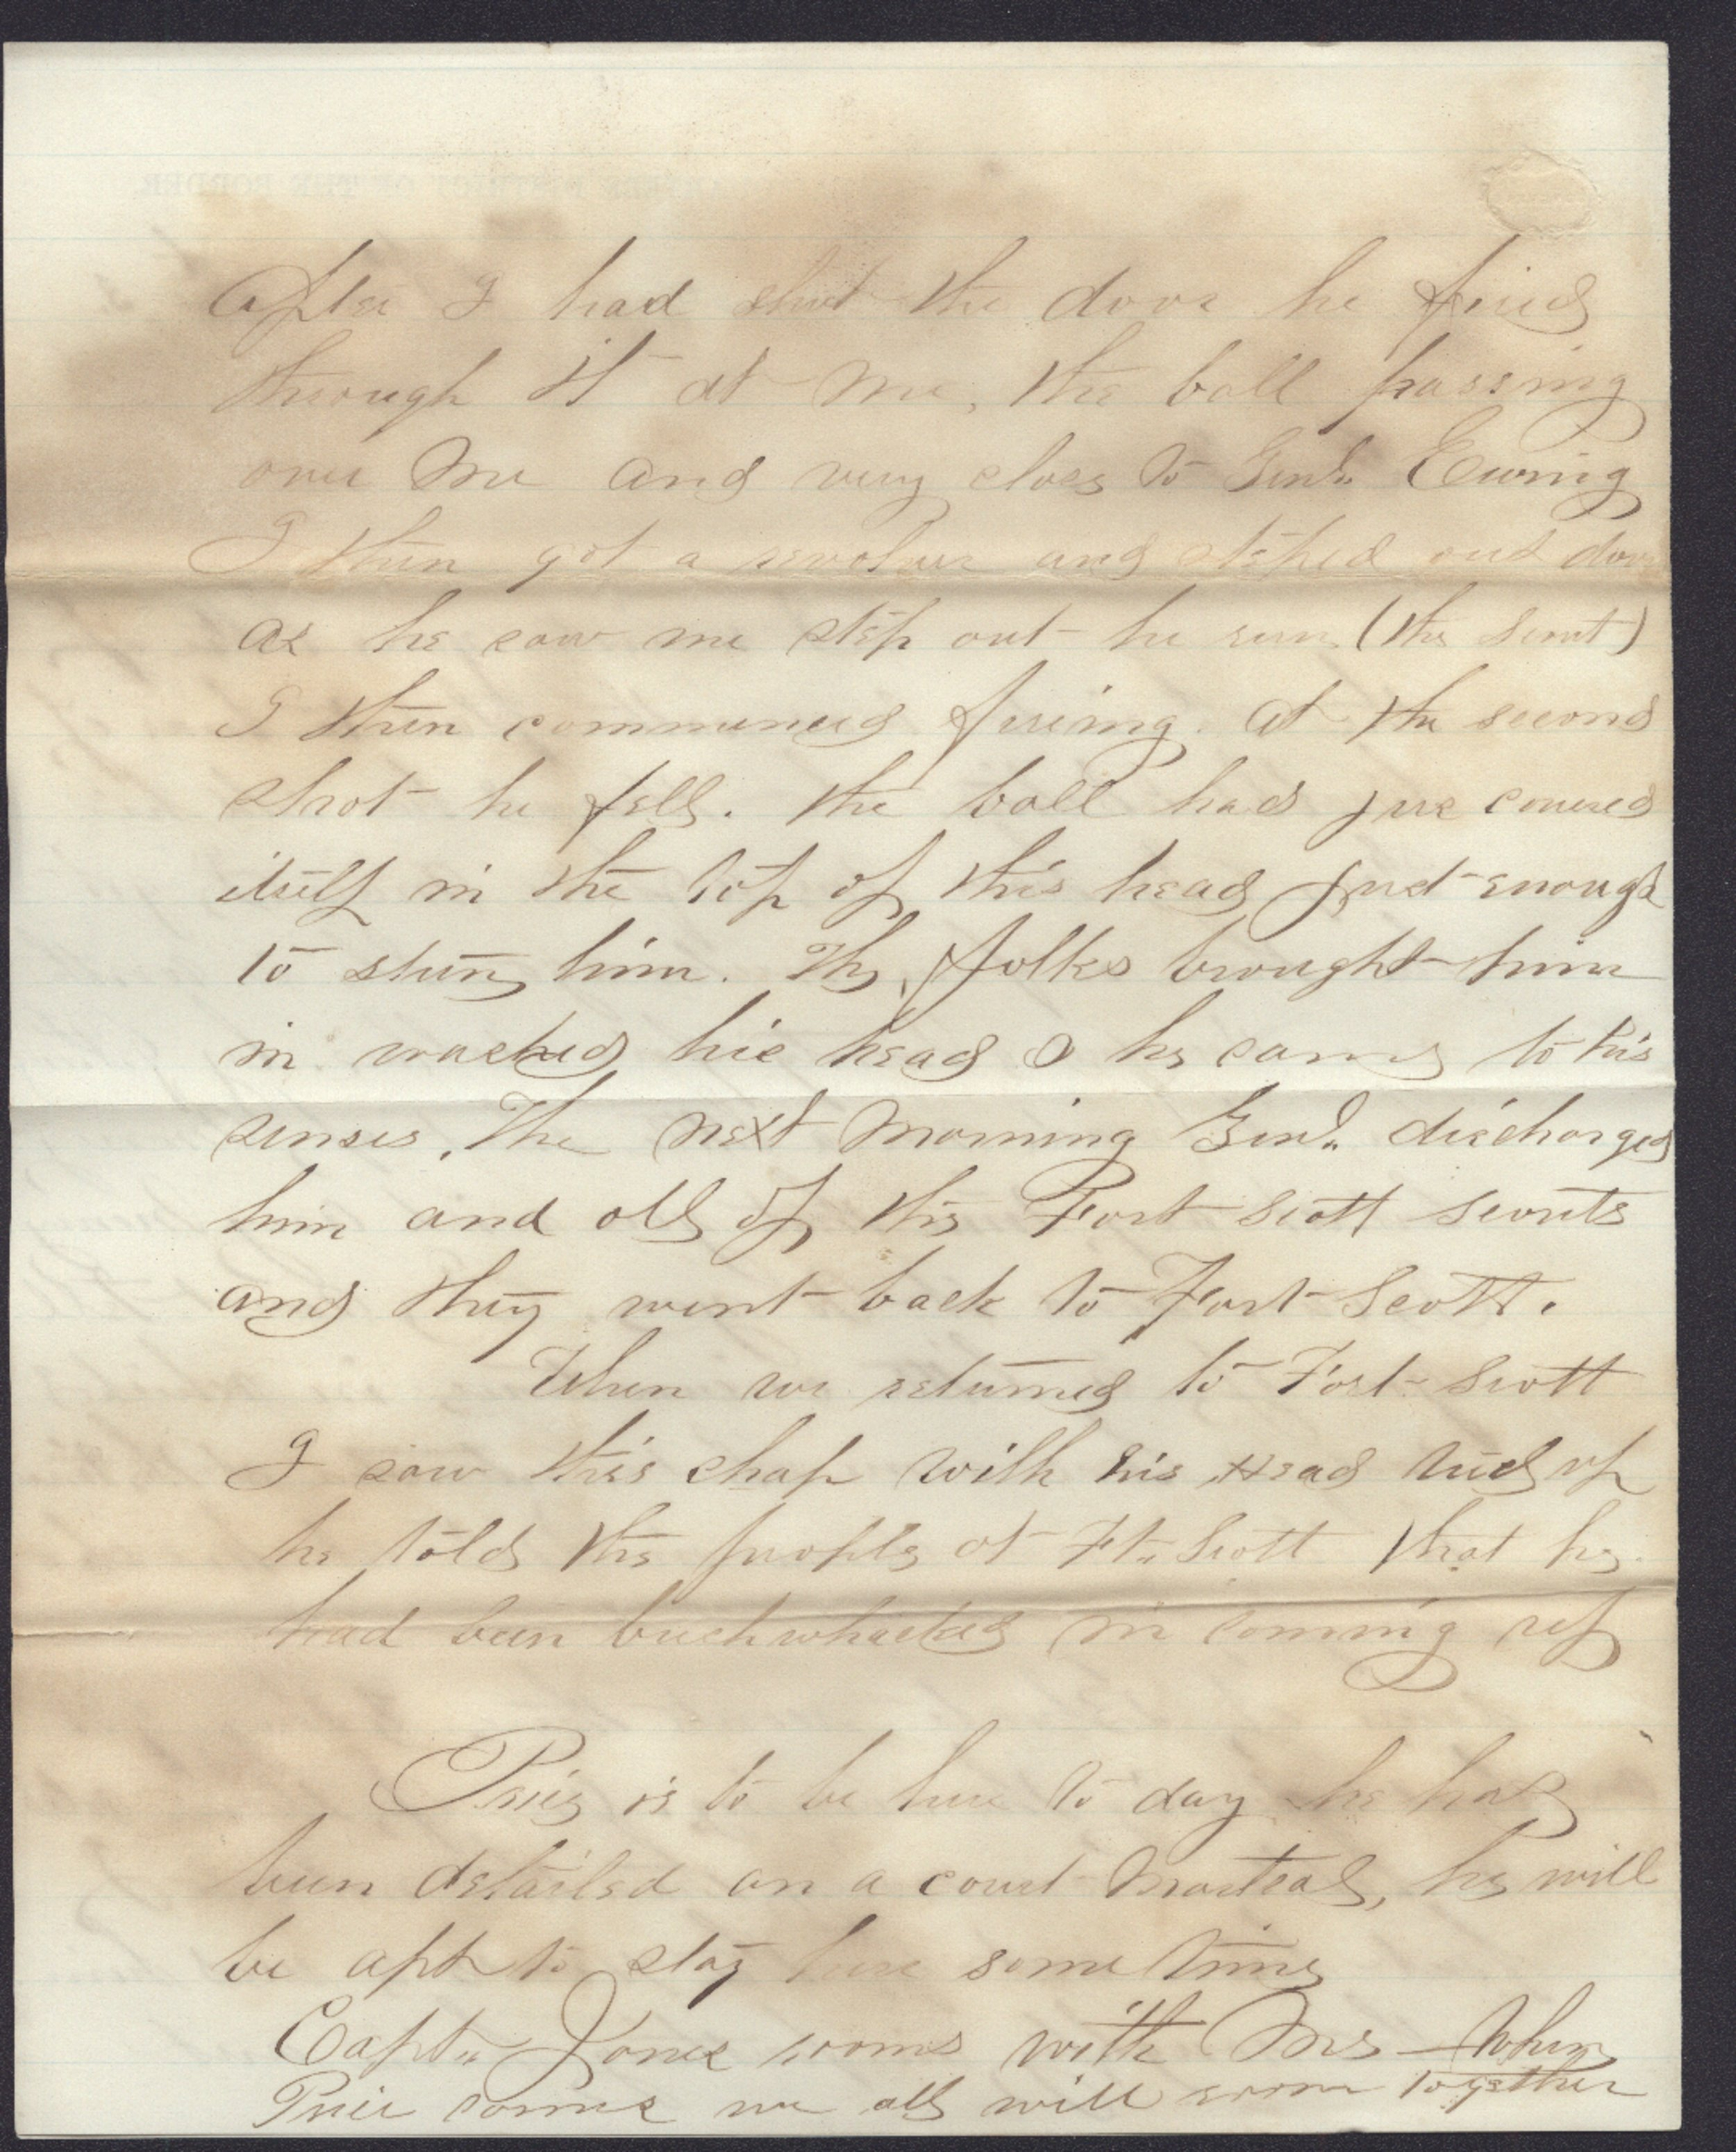 Cyrus Leland, Jr. to Mother and other family members - 6